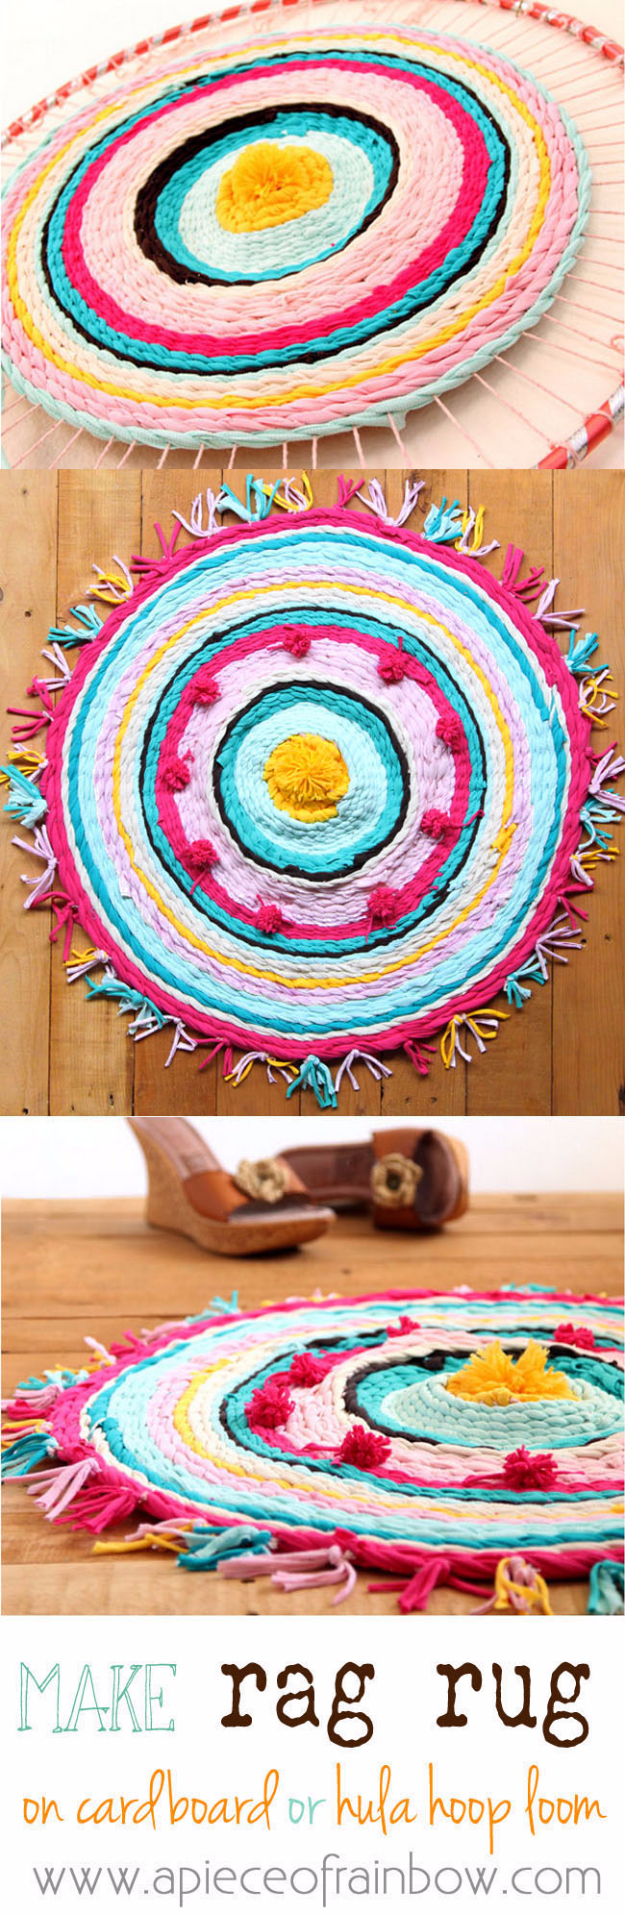 Easy DIY Rugs and Handmade Rug Making Project Ideas - Rag Rug From Old T-Shirts - Simple Home Decor for Your Floors, Fabric, Area, Painting Ideas, Rag Rugs, No Sew, Dropcloth and Braided Rug Tutorials http://diyjoy.com/diy-rugs-ideas